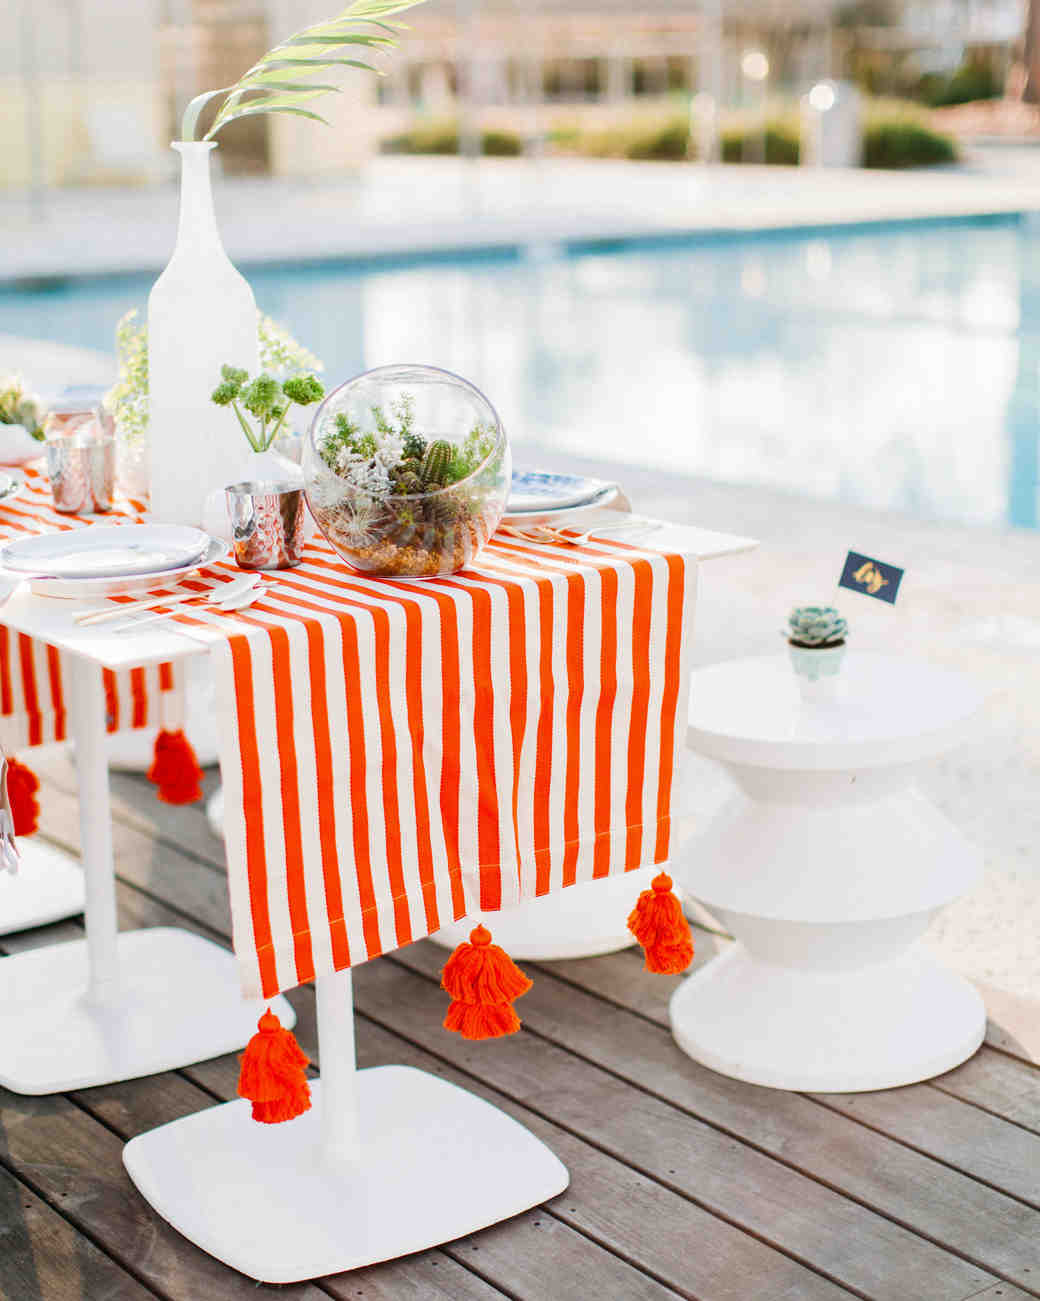 striped bright red table runner with greenery by pool